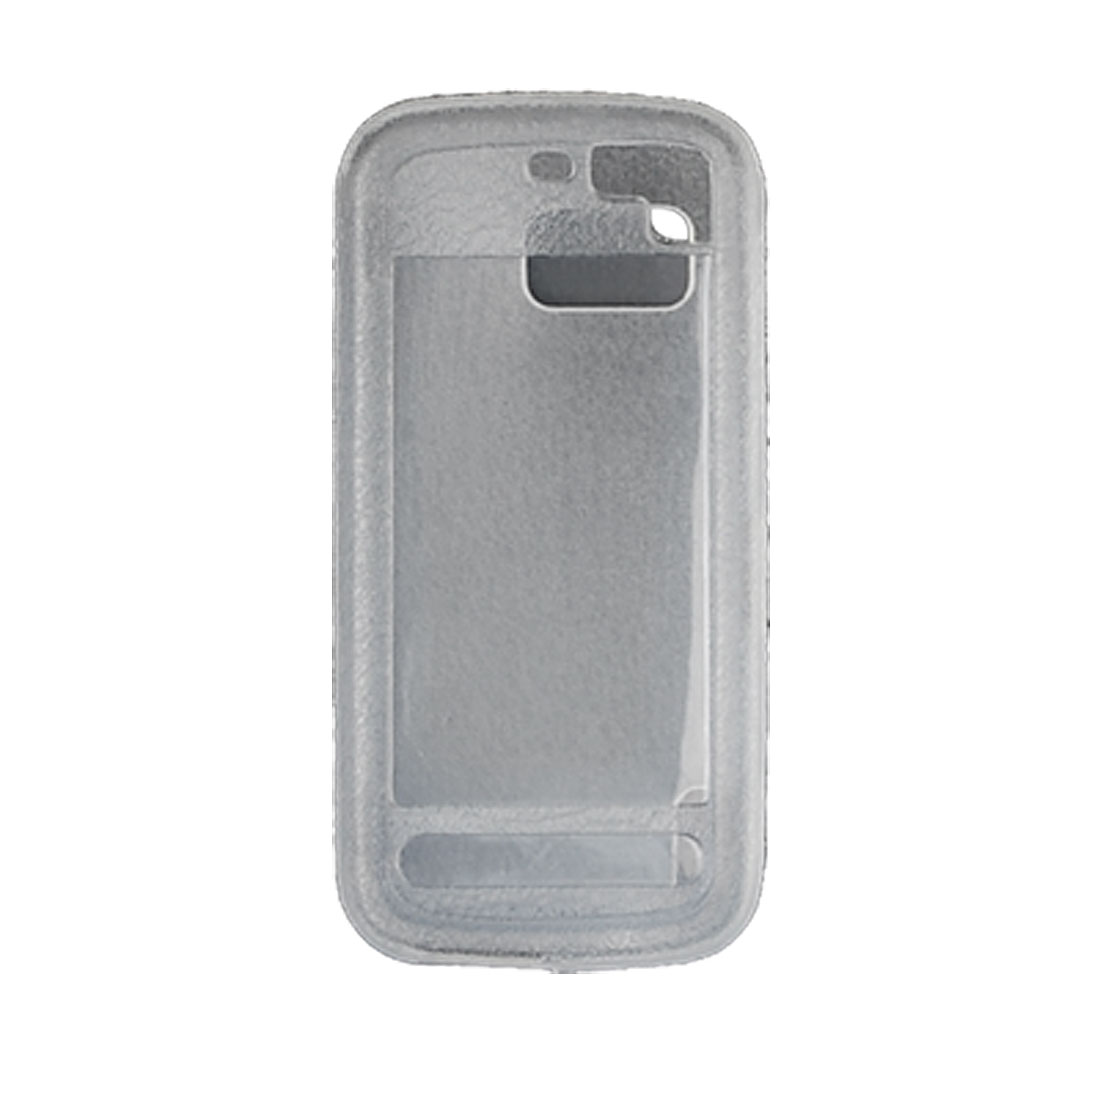 Soft Plastic Cell phone Shell Case for Nokia 5800